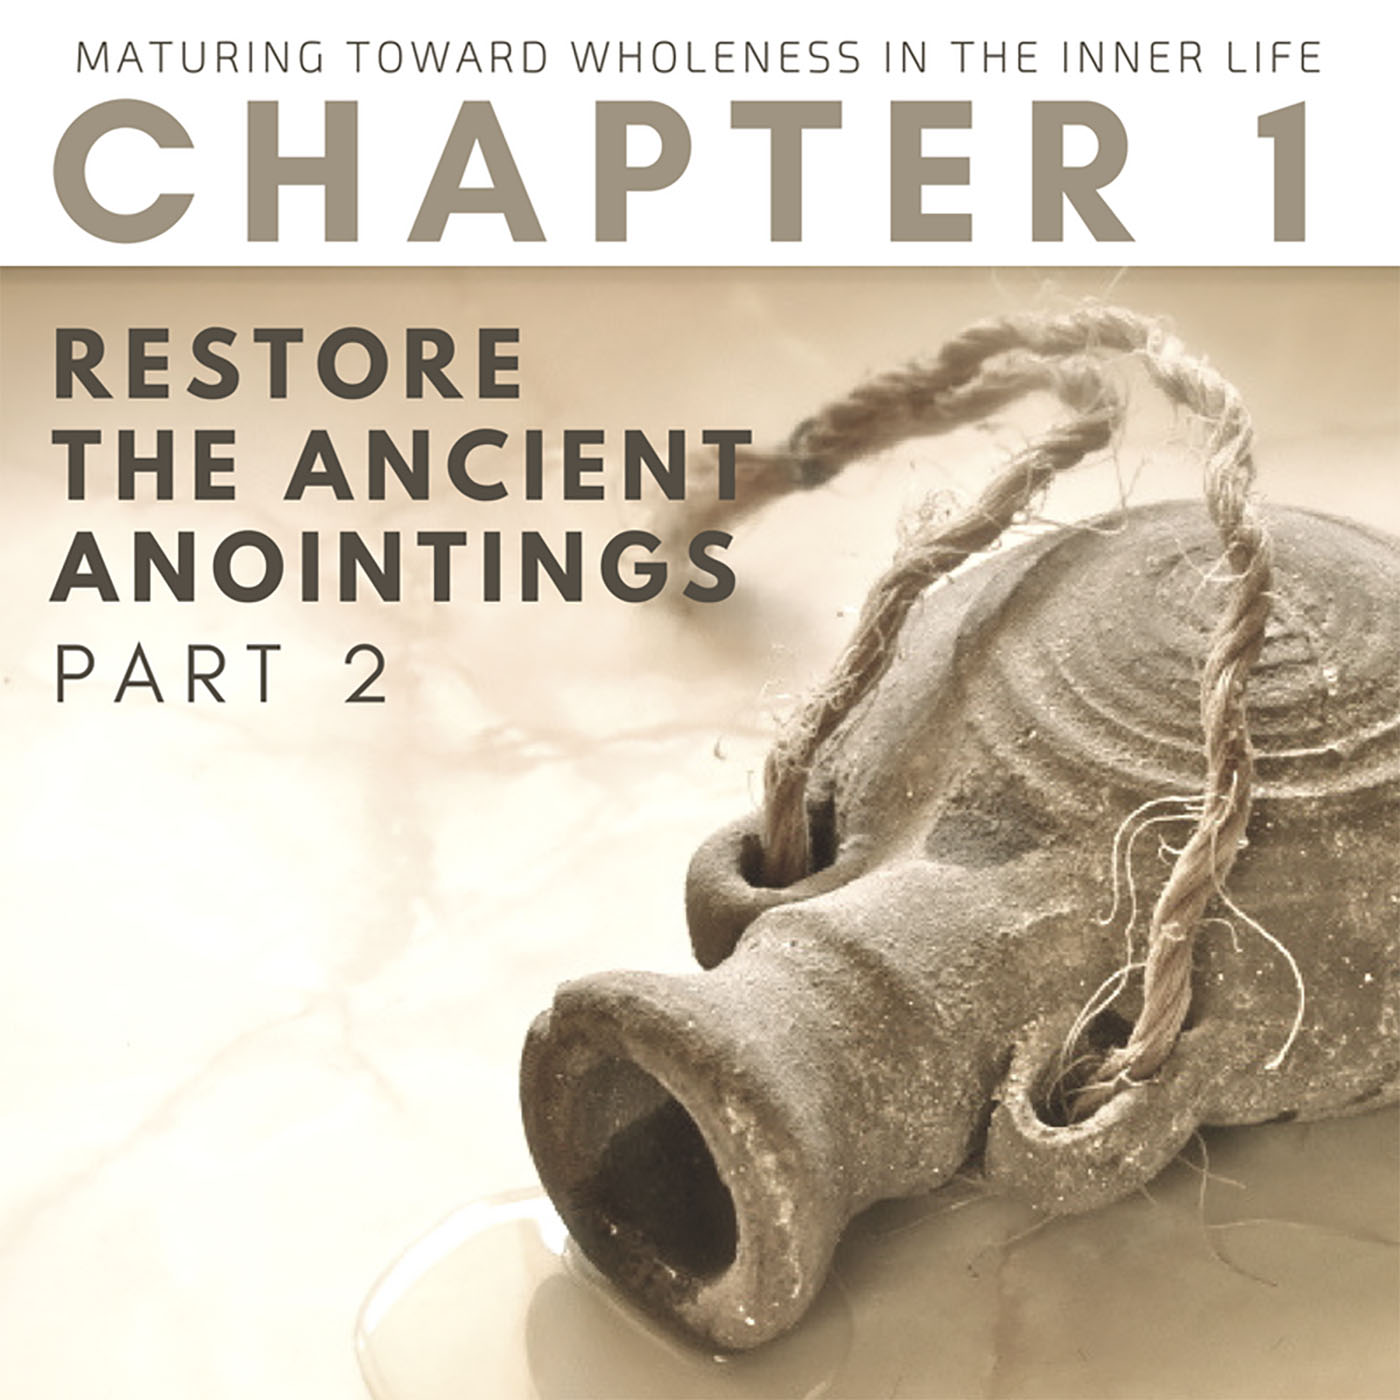 Restore the Ancient Anointings (2 of 3)